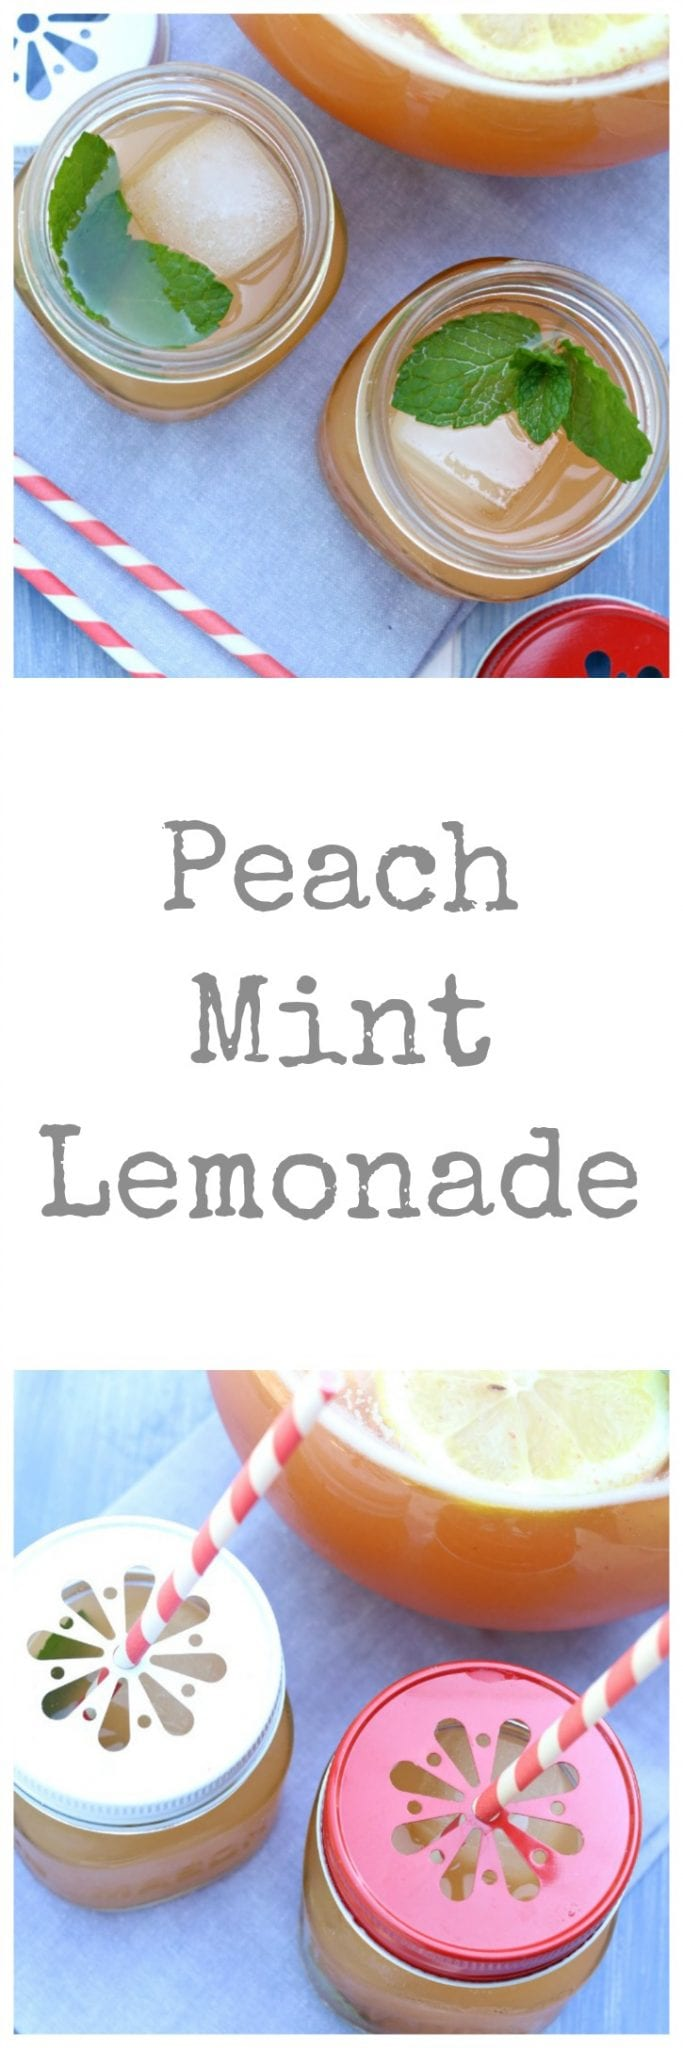 Cheers to summer with this light and tangy Peach Mint Lemonade.